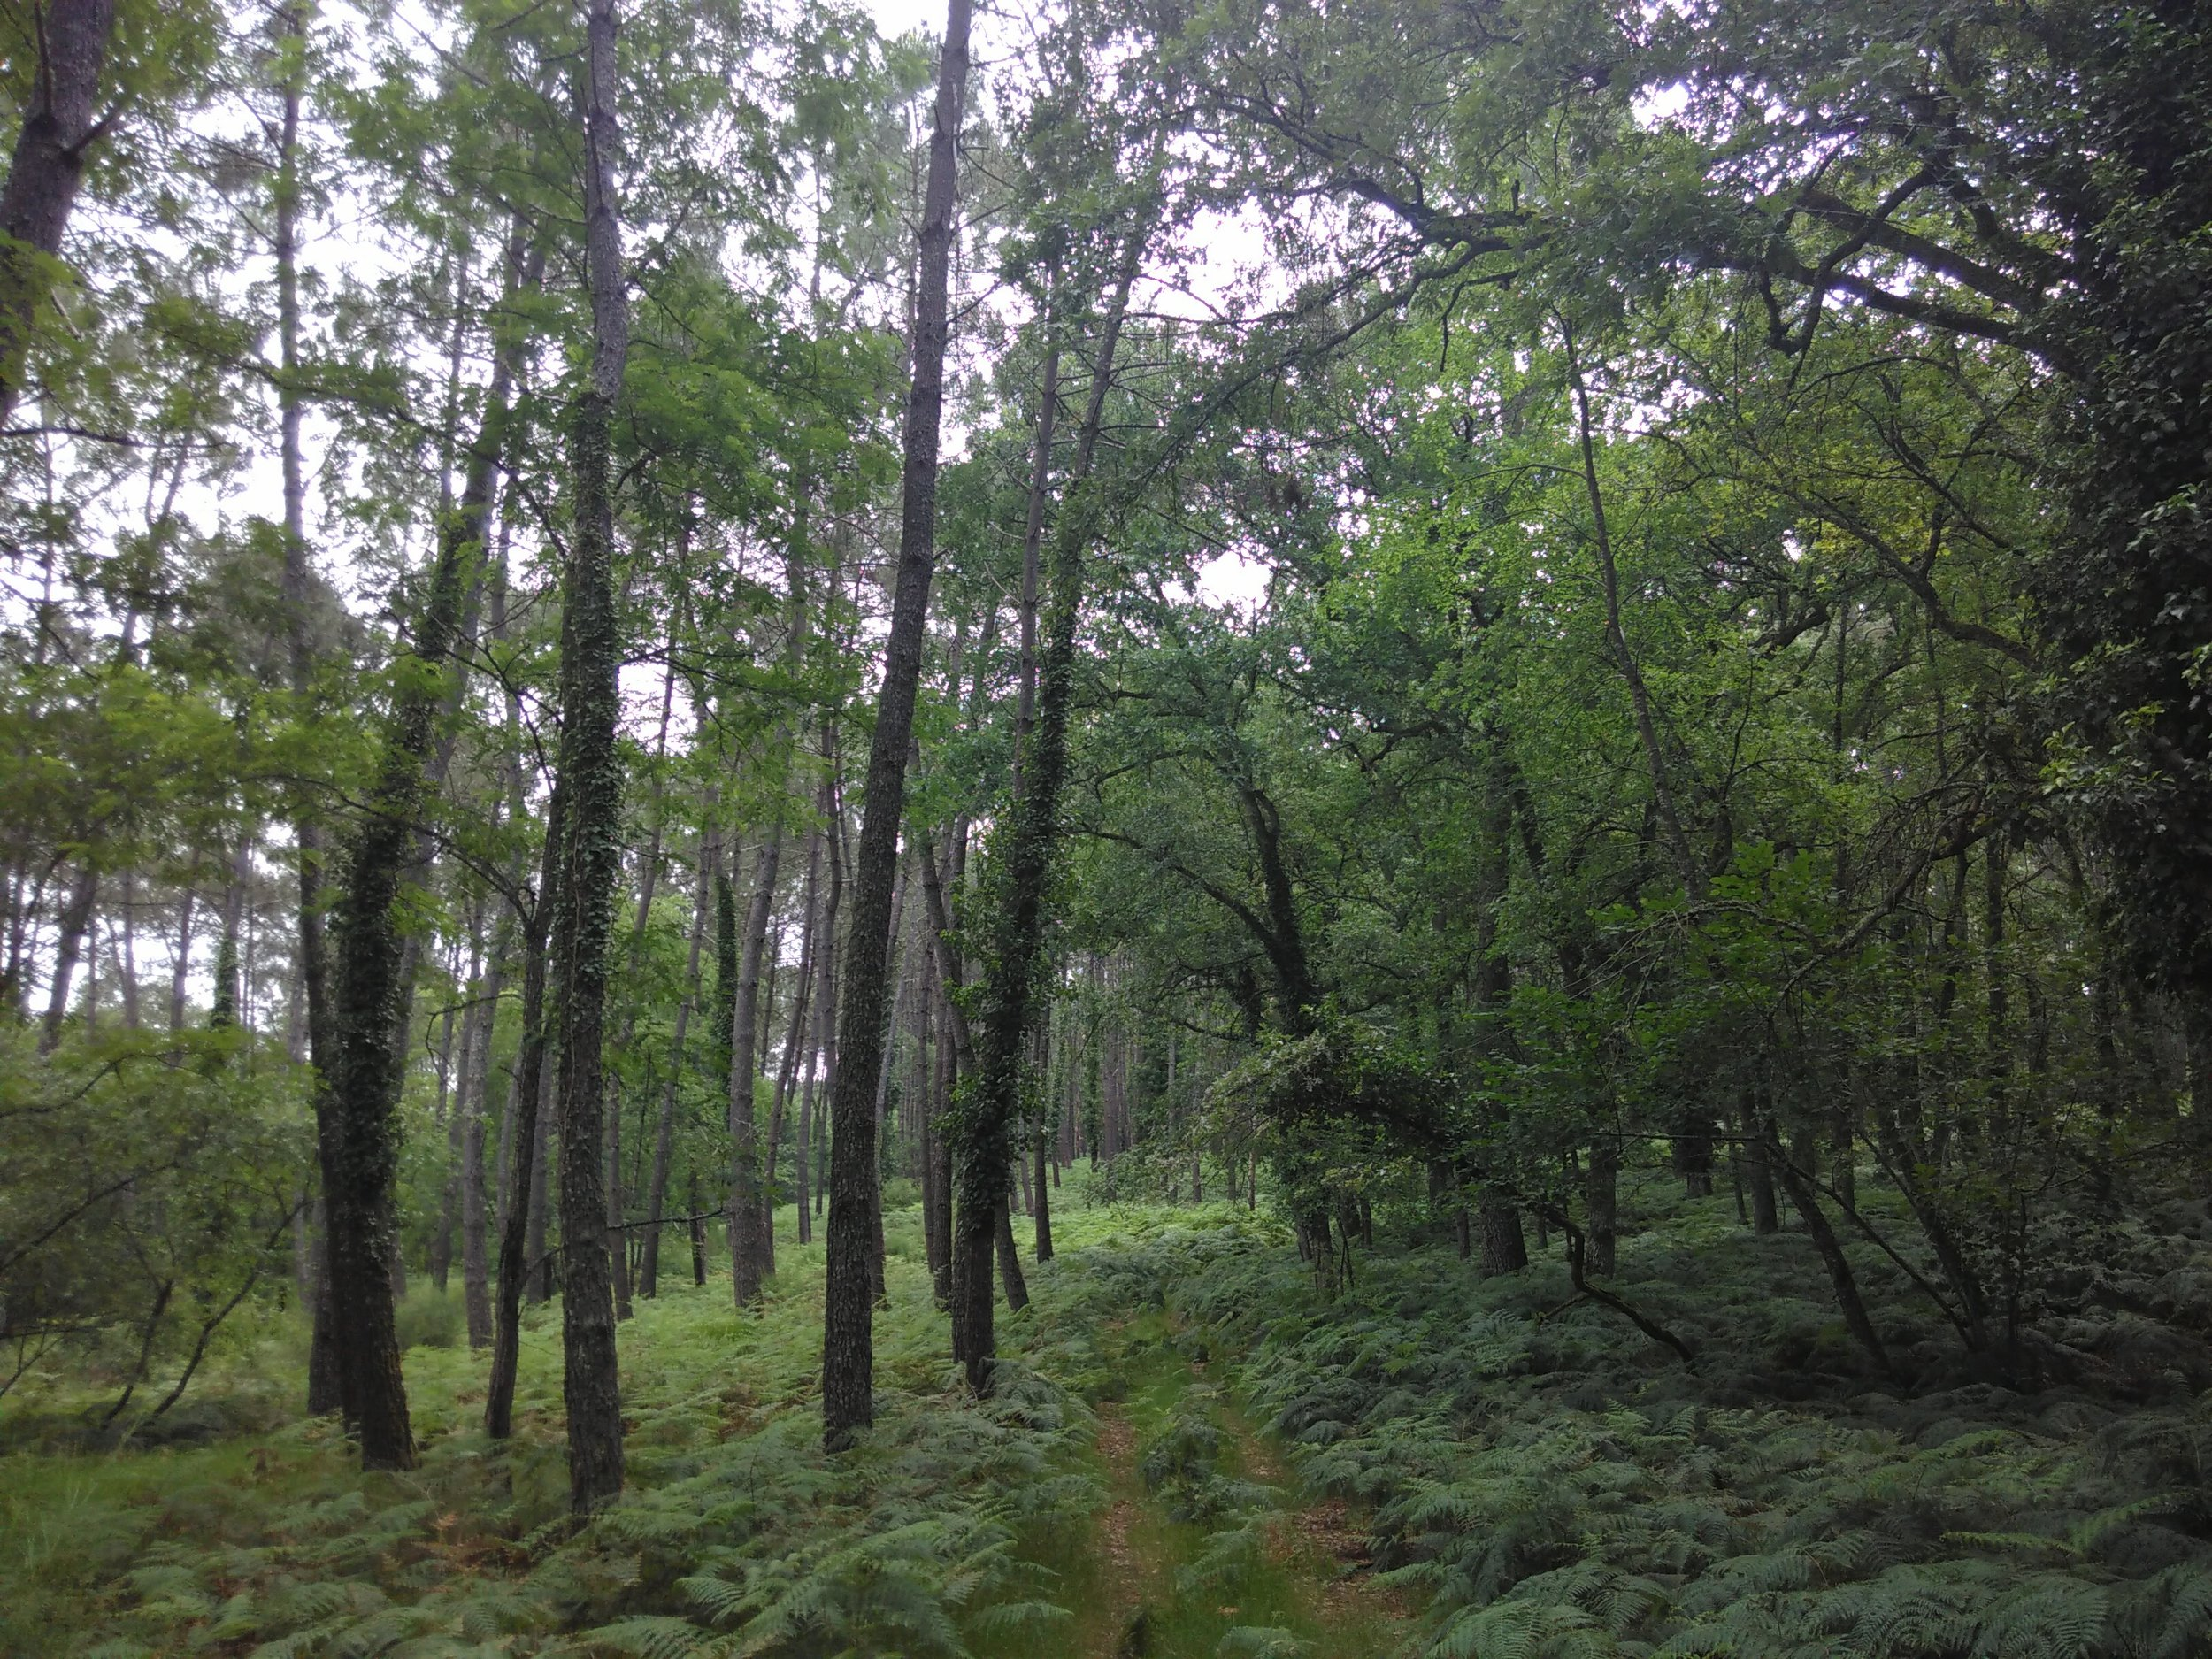 A forest walk can relieve stress and boost well-being.